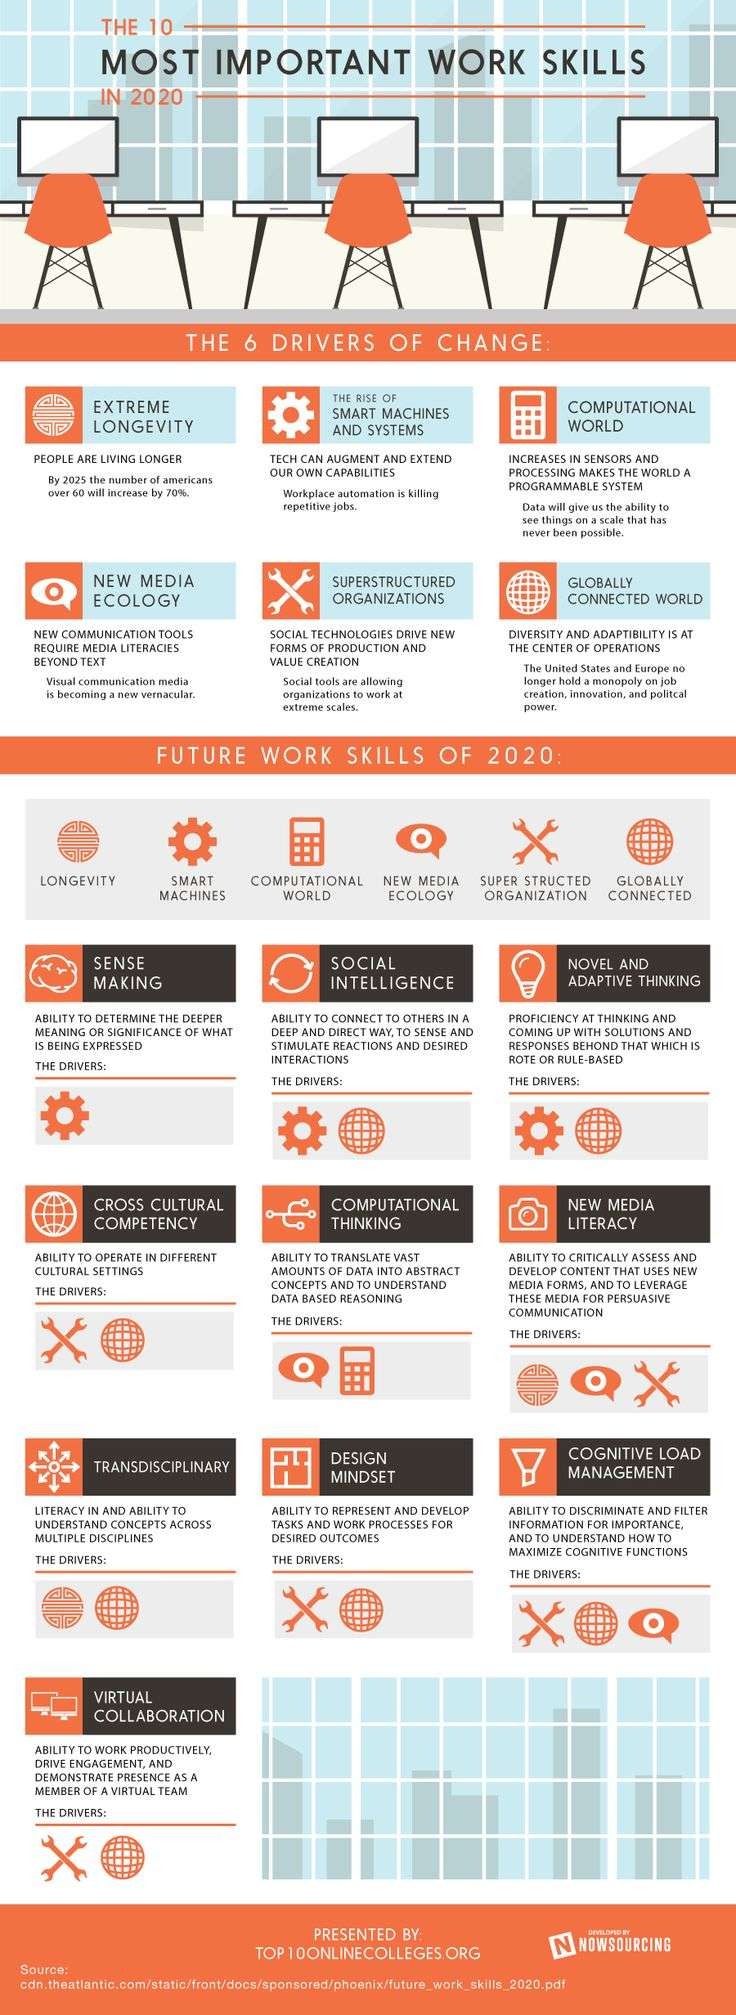 The 10 Most Important Work Skills